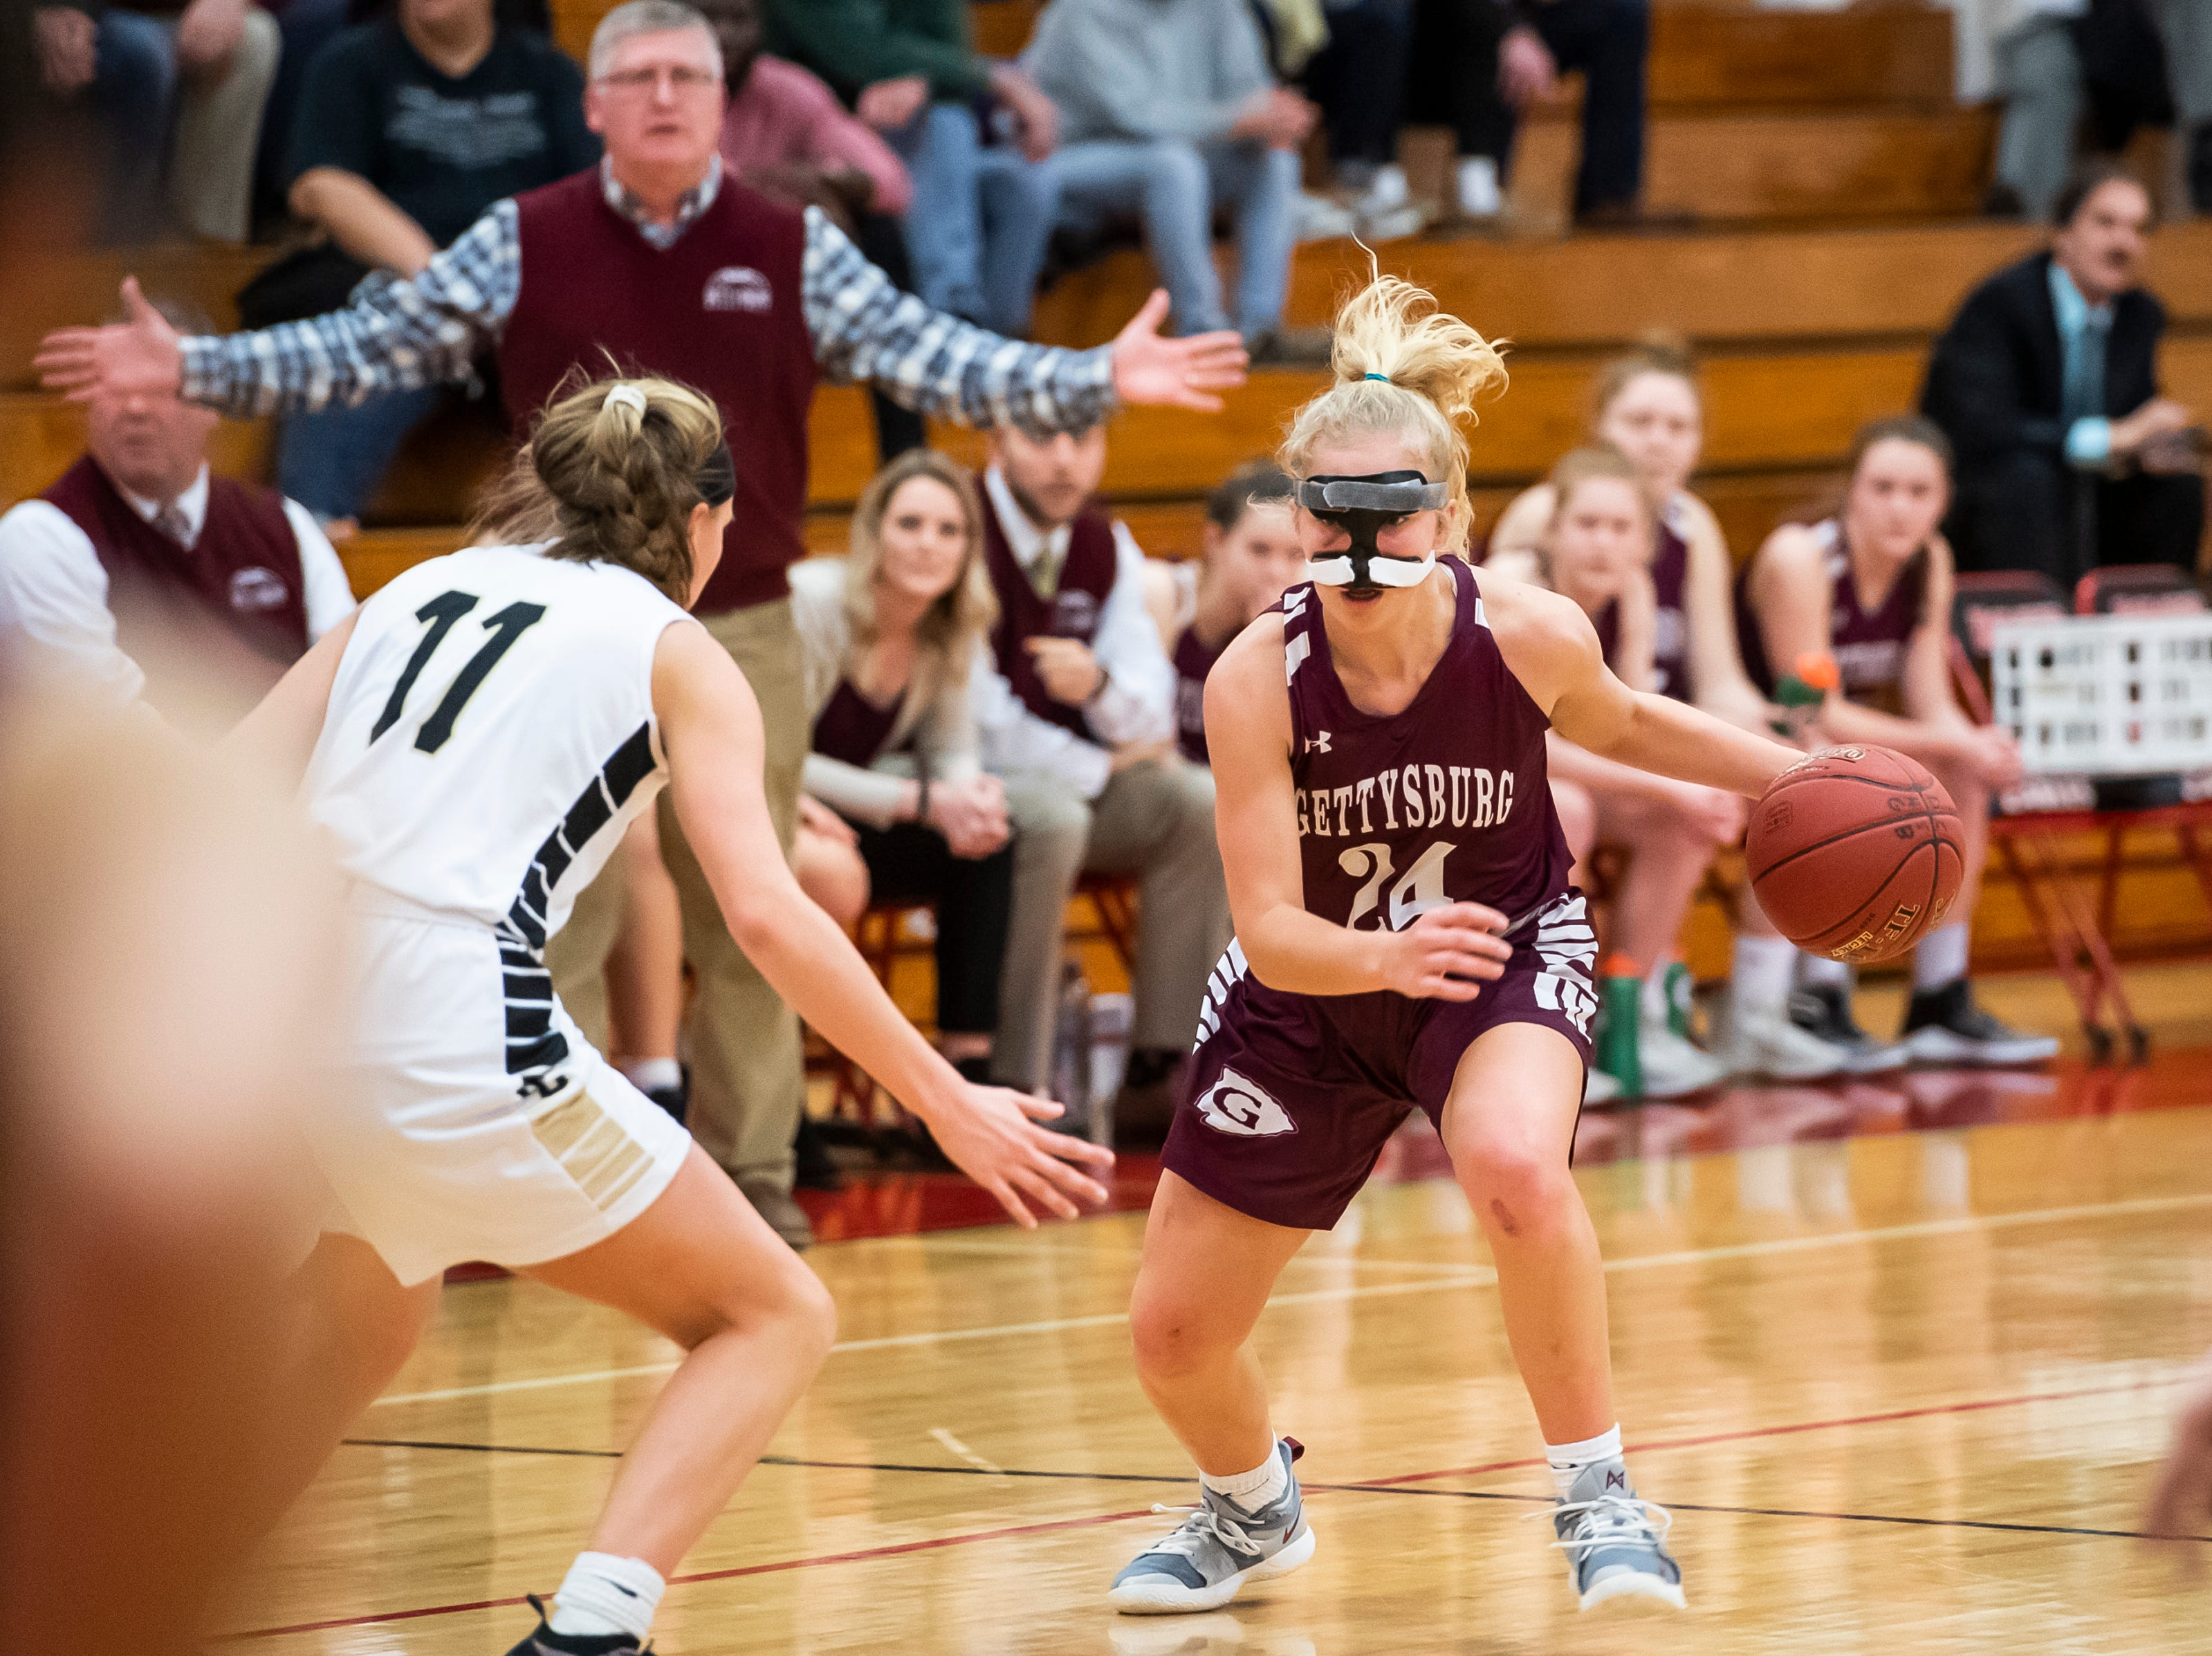 """Gettysburg's Anne Bair dribbles down the court during play against Delone Catholic in a YAIAA quarterfinal game at Dover High School Friday, February 8, 2019. """"It's not badly broken,"""" Jeff Bair said of Anne Bair's broken nose, which happened during a game against Kennard-Dale Saturday. """"Doctor's saw it. She wears the mask, she's fine...she plays with a lot of courage, and she wanted to really play at a high level."""""""